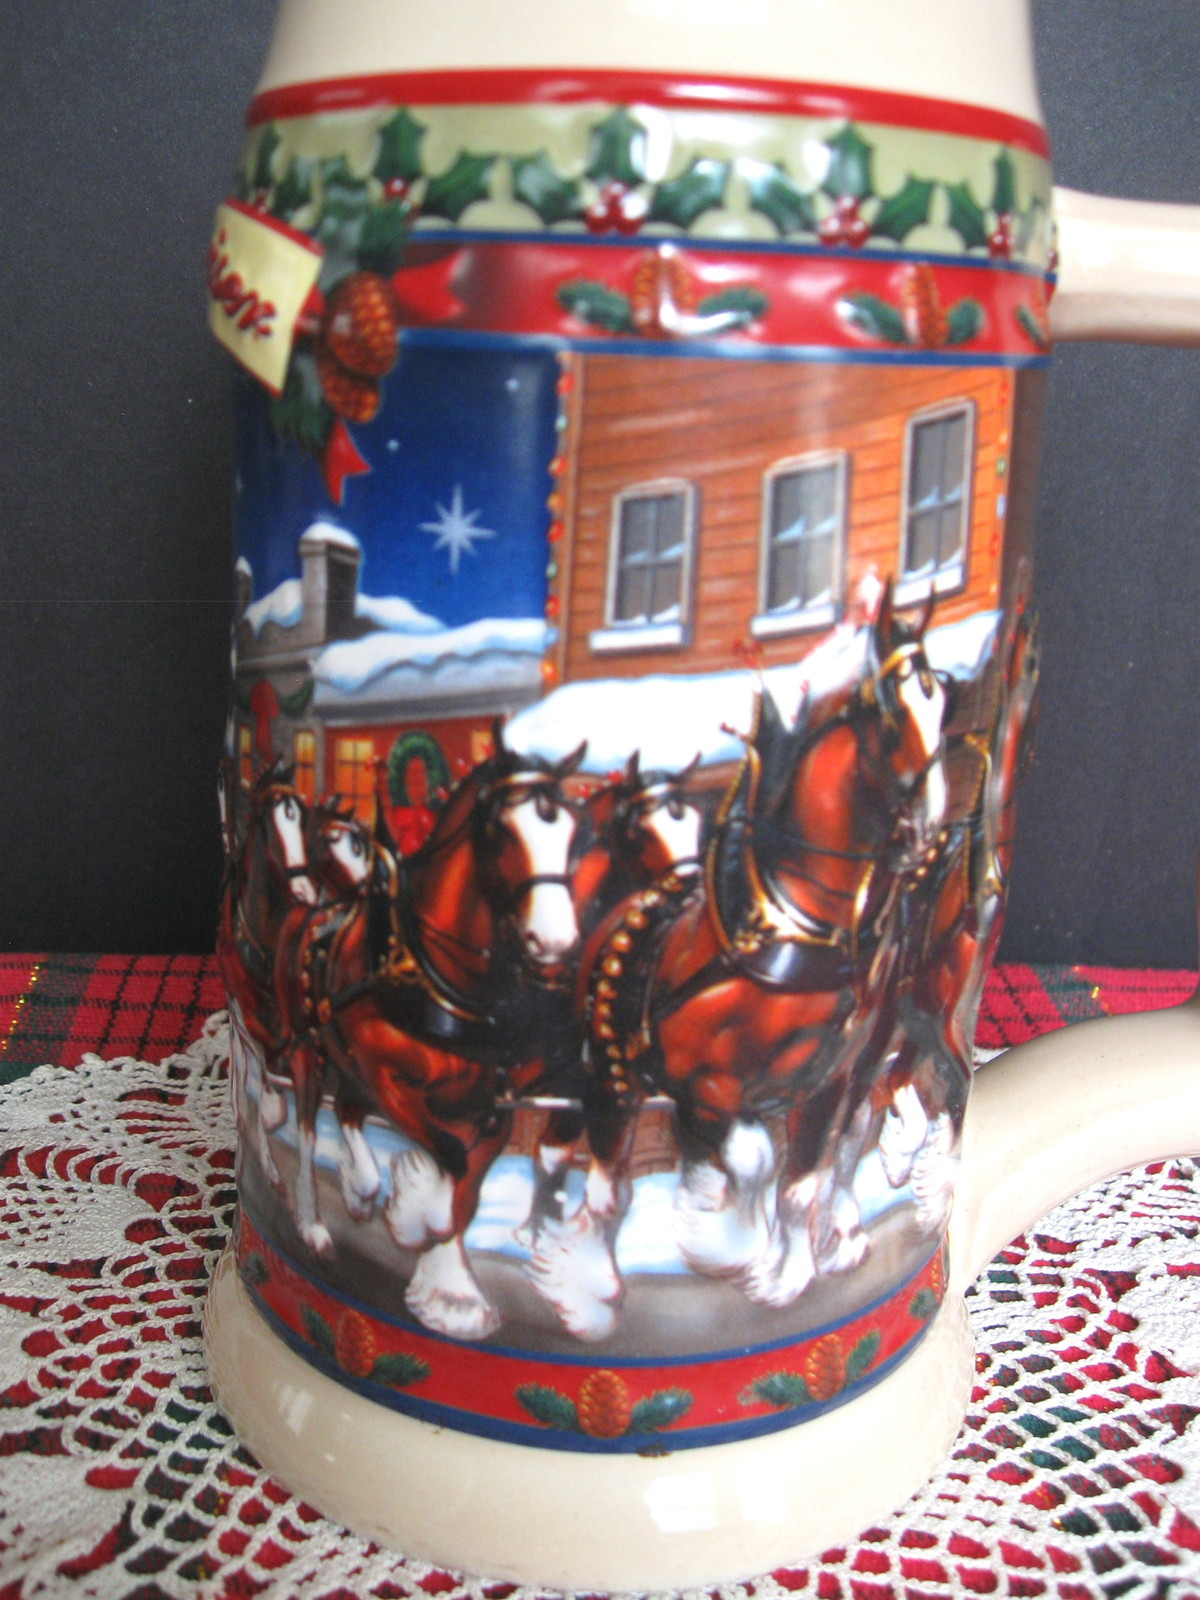 2003 Budweiser Holiday Stein - Old Towne Holiday - No. CS560 - No Box image 7